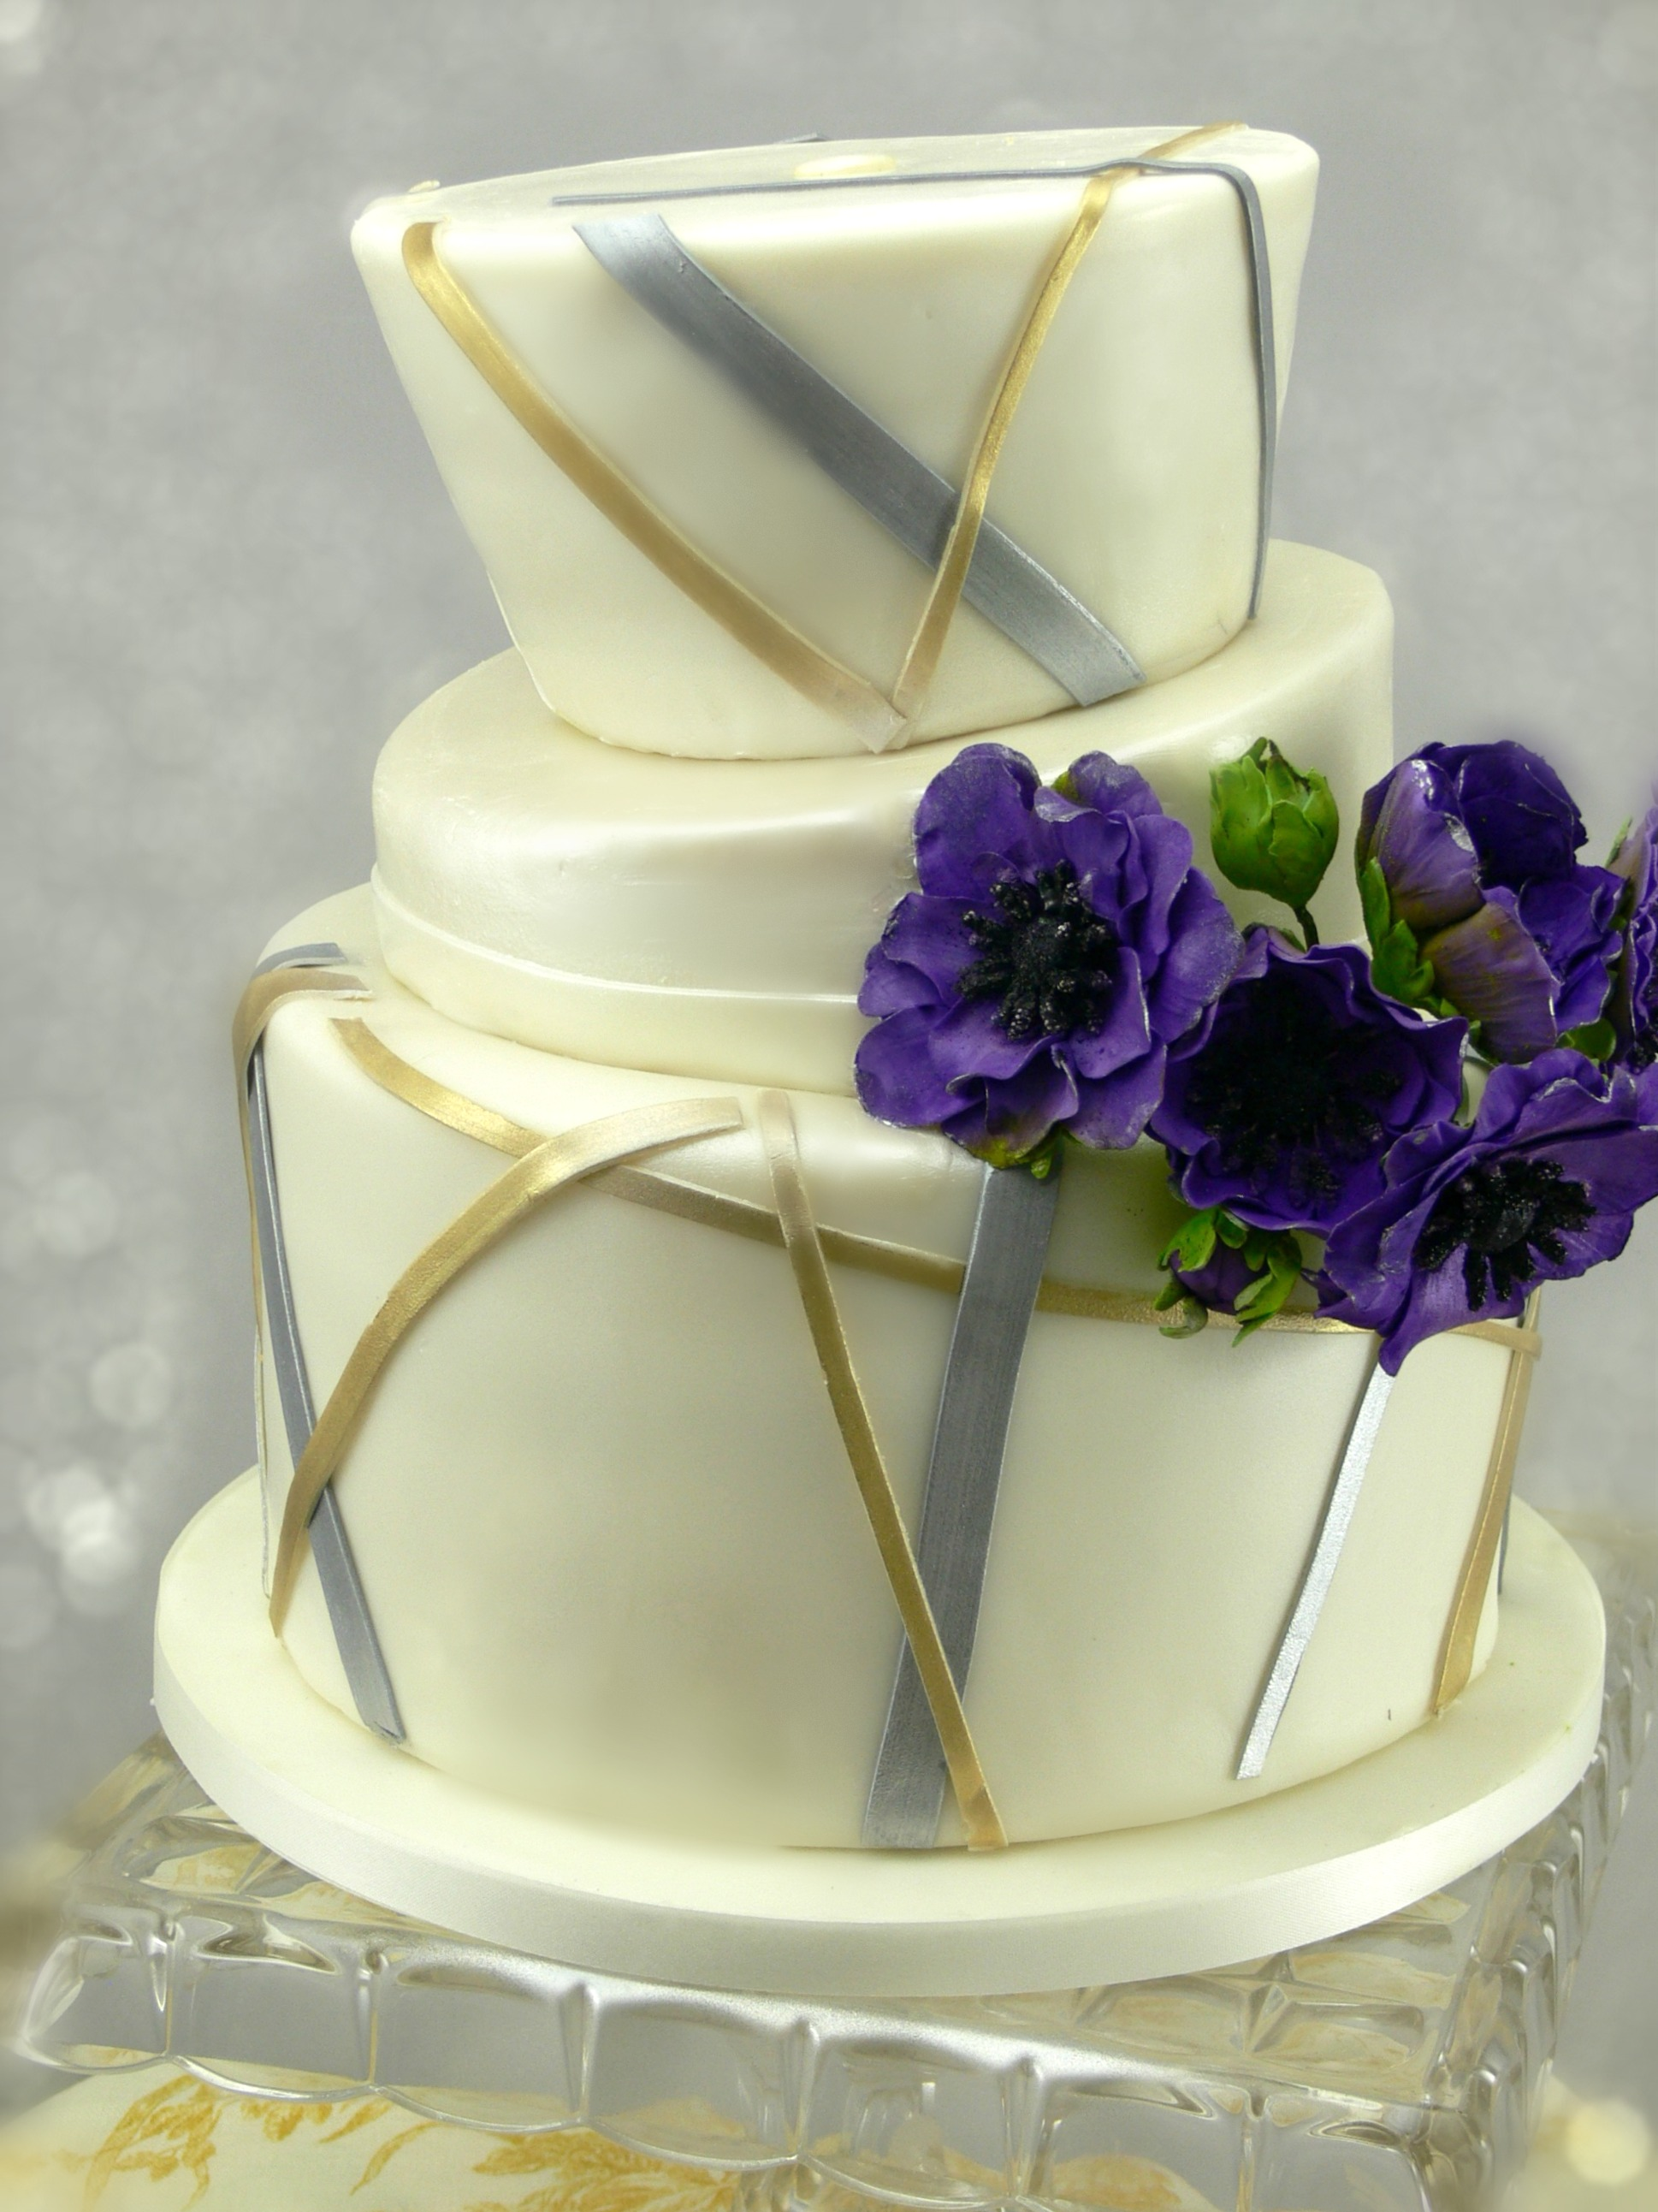 Contemporary Shower Cake with Purple Anemones.jpg